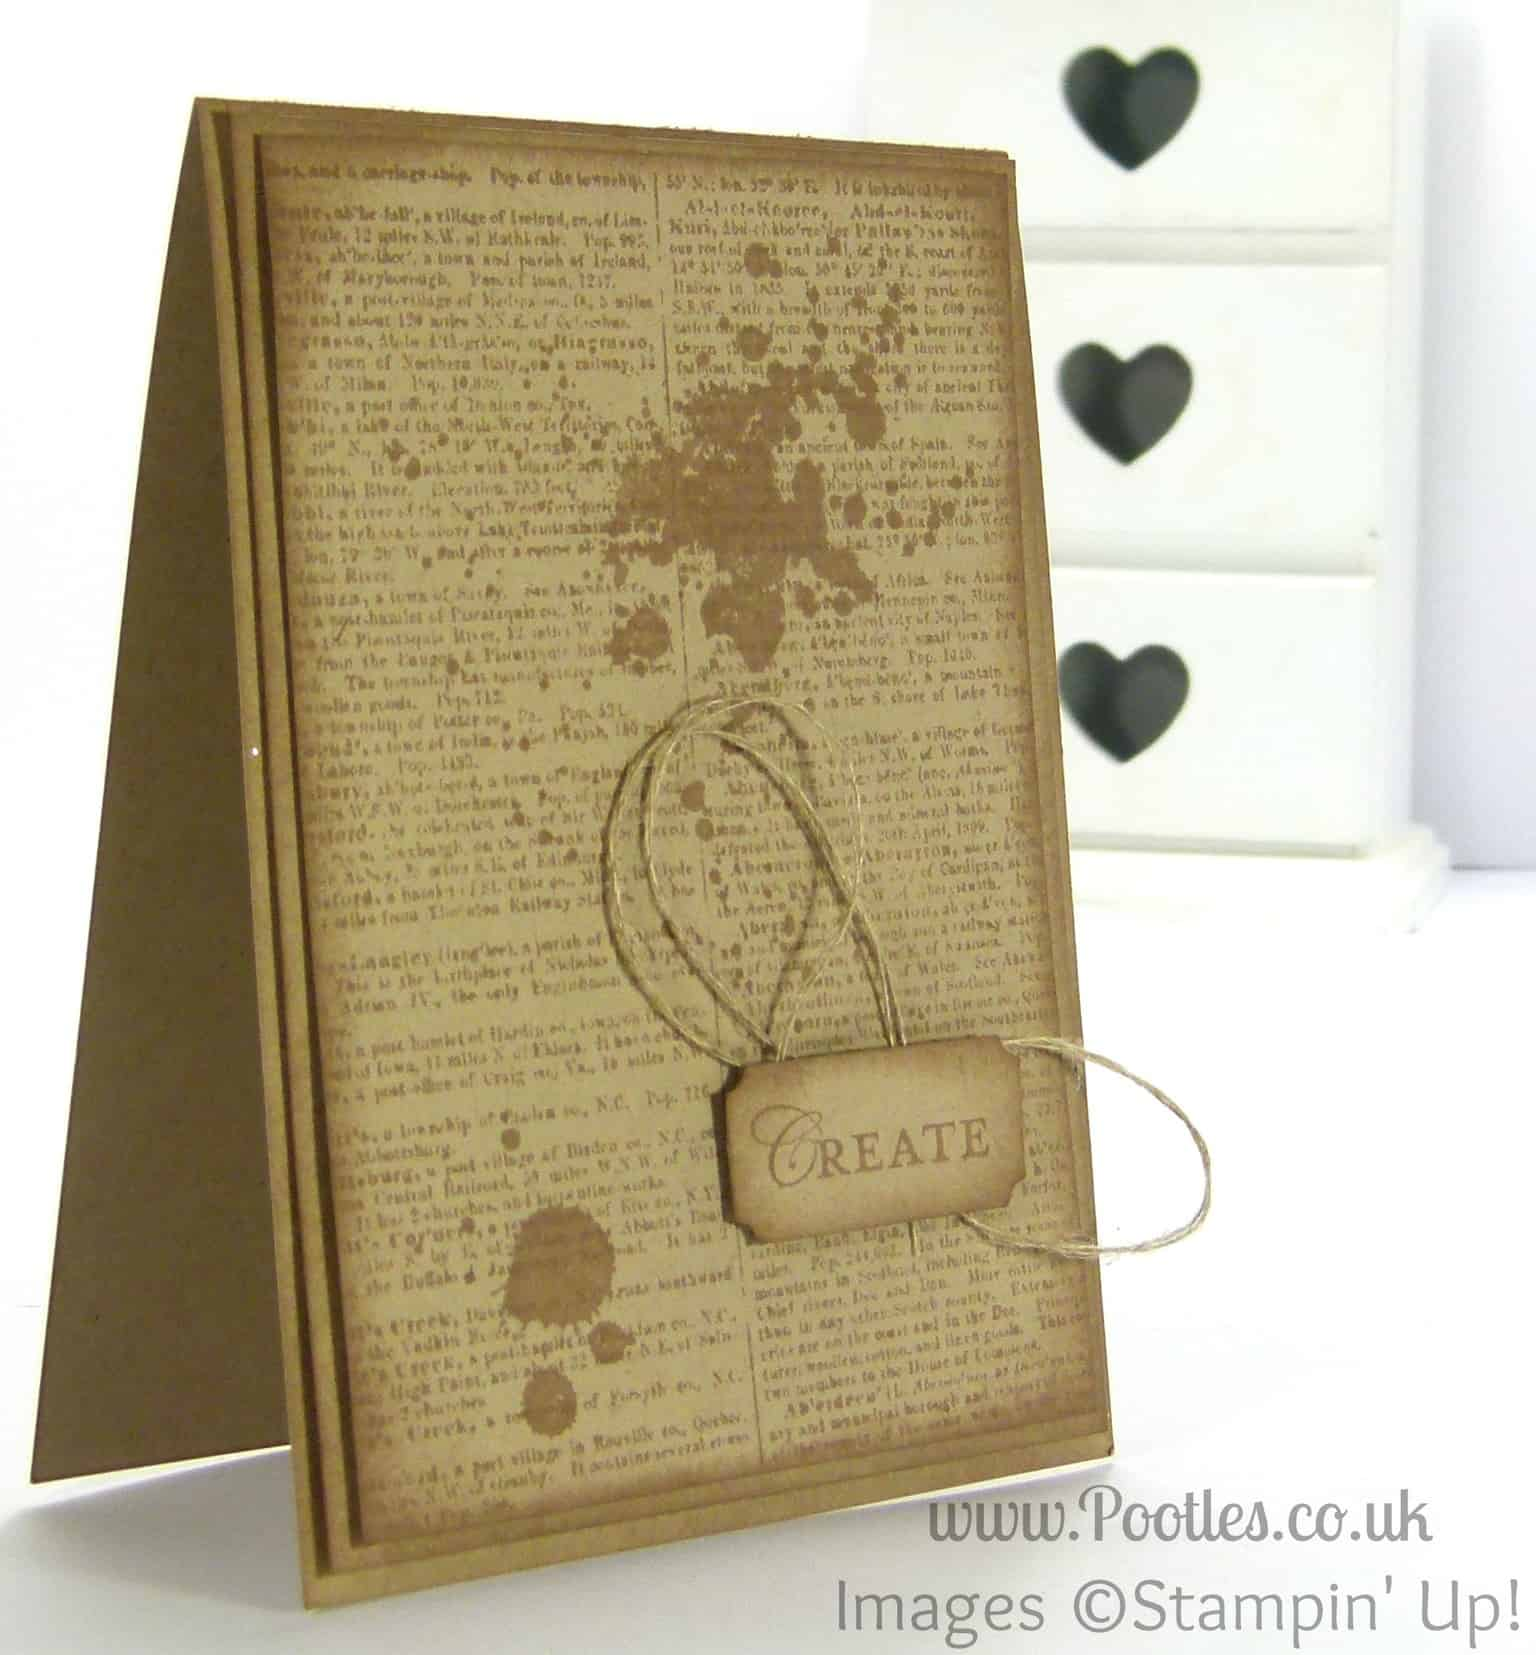 Stampin' Up! UK Demonstrator Pootles - Loving Thoughts of a Dictionary Teacher Card Perhaps...